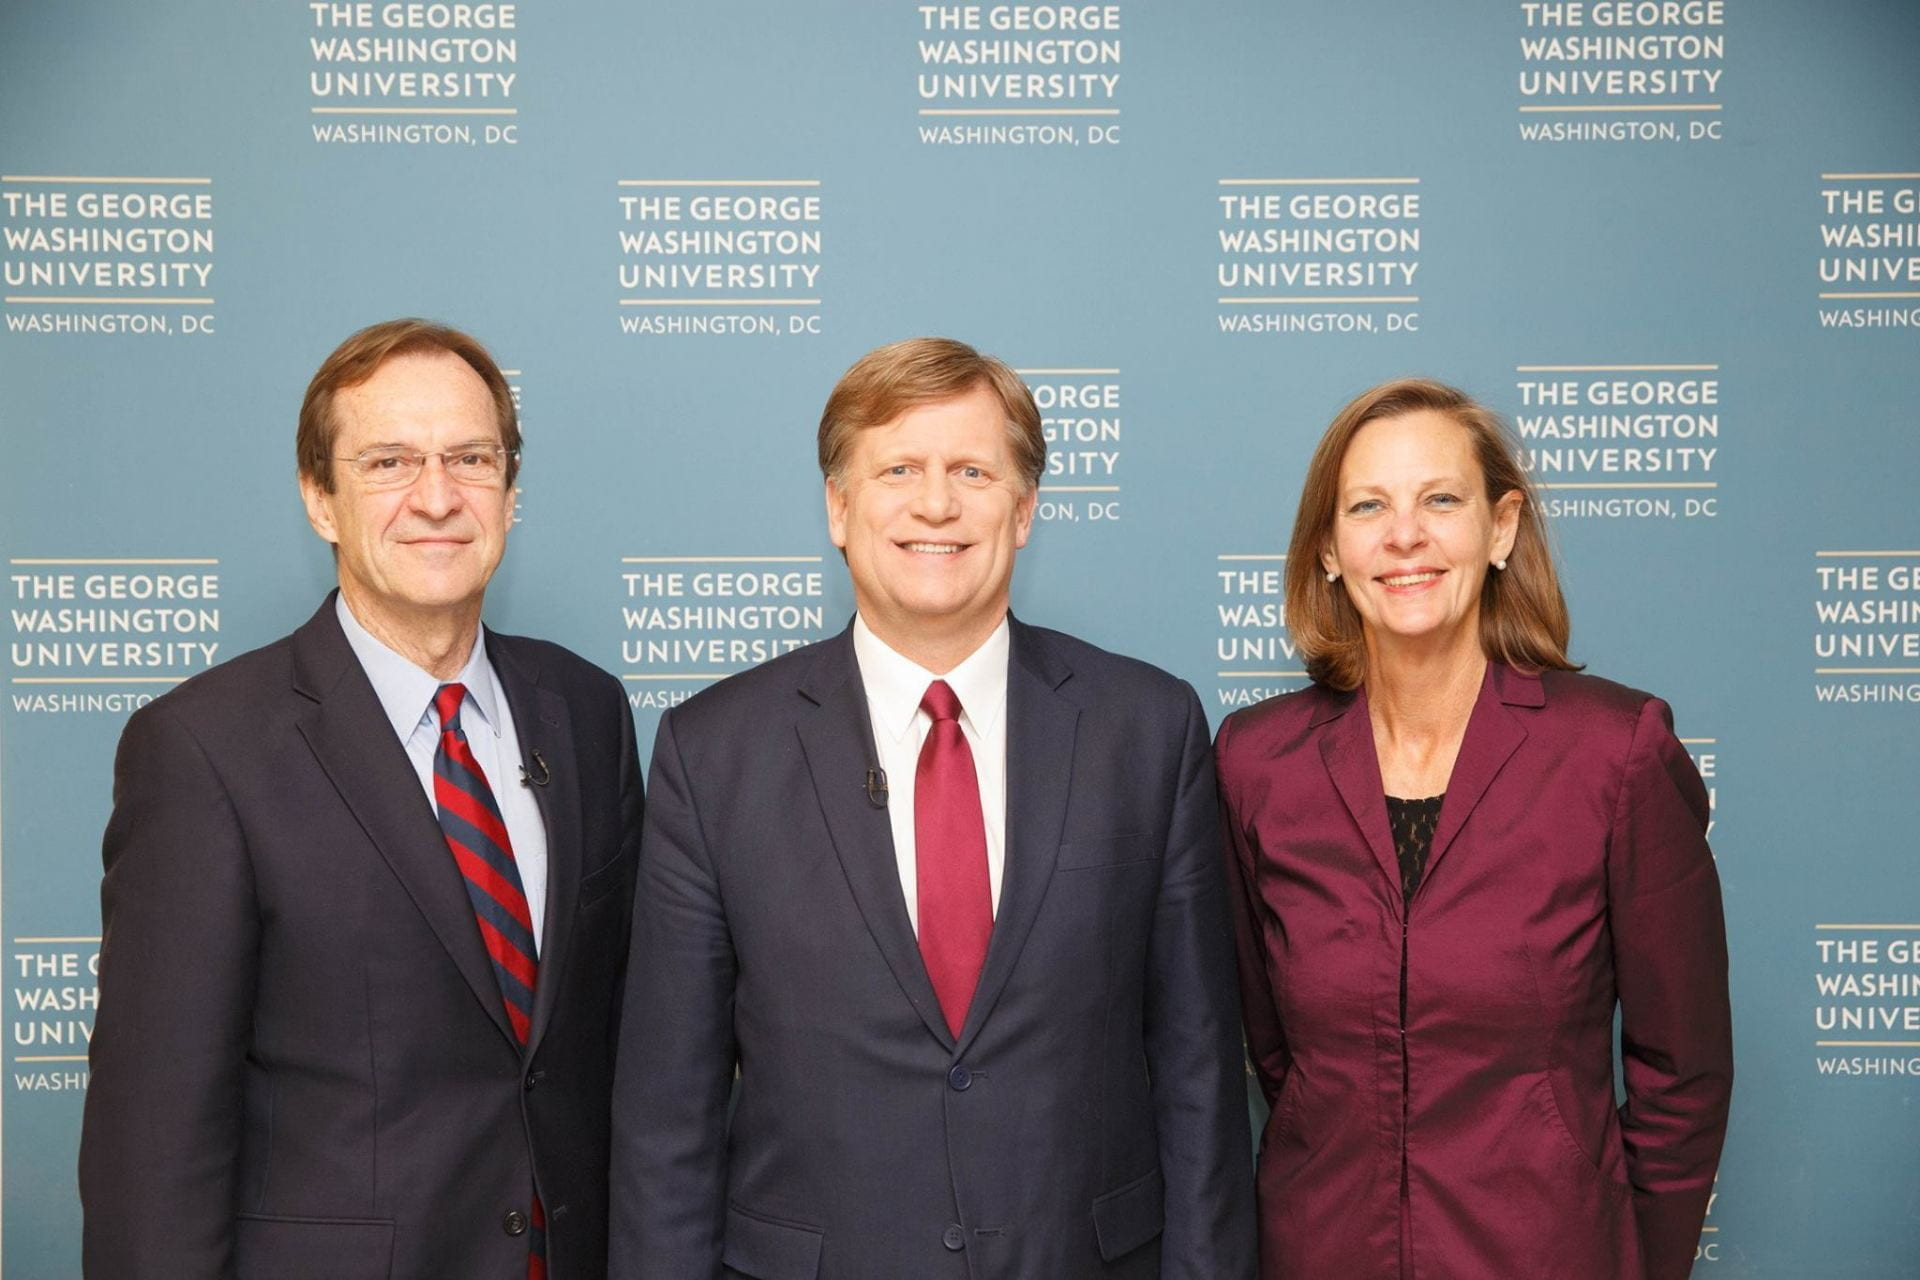 Three people standing in front of George Washington University step-repeat backdrop